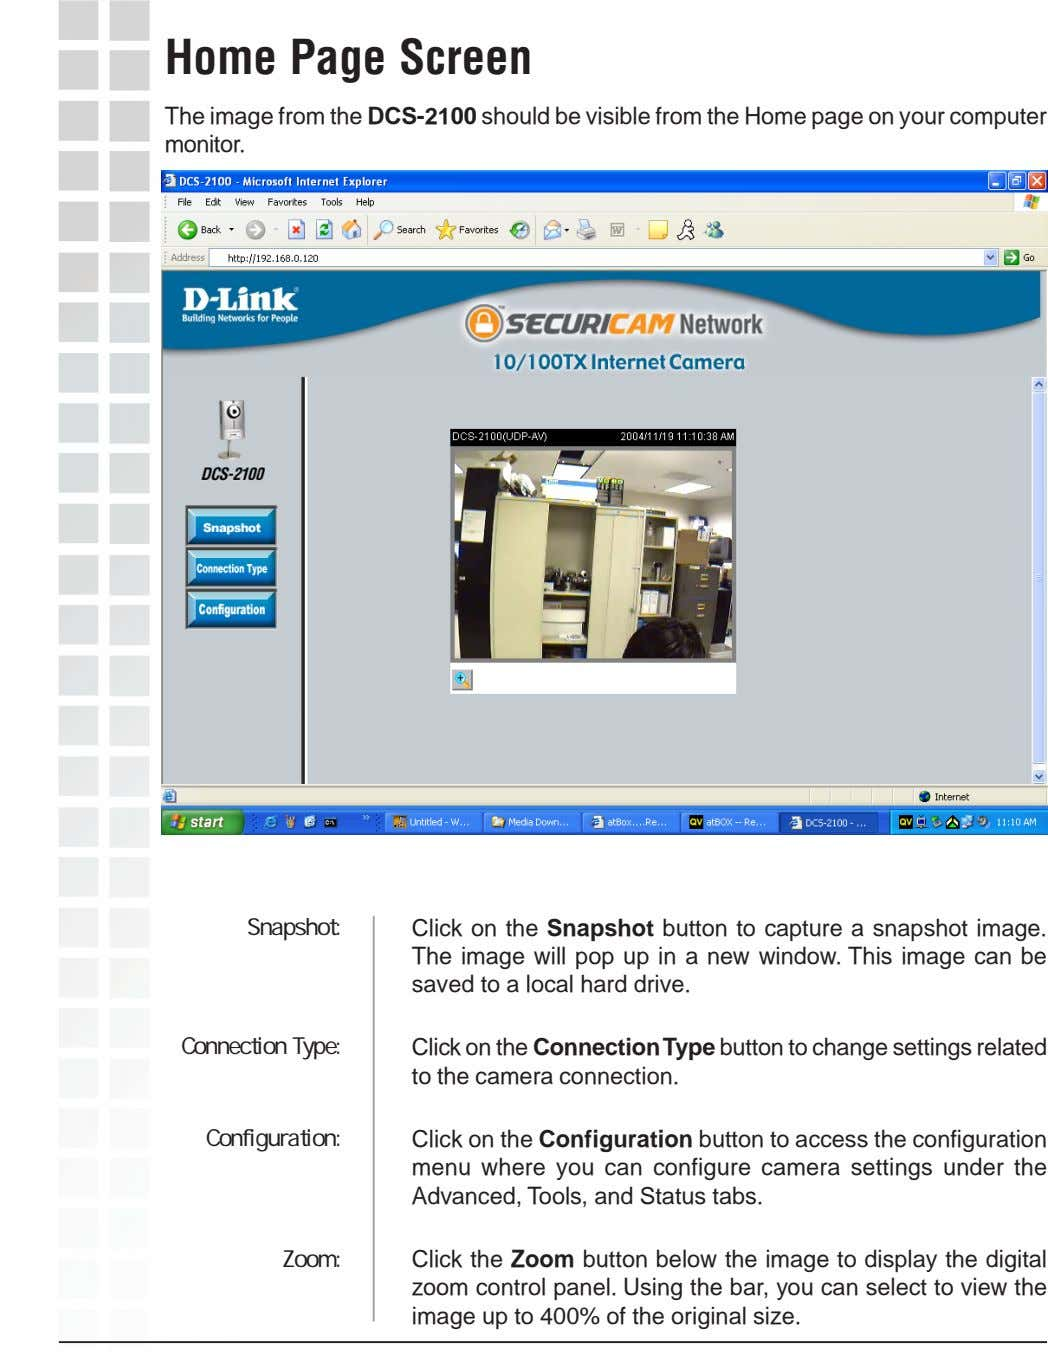 Home Page Screen The image from the DCS-2100 should be visible from the Home page